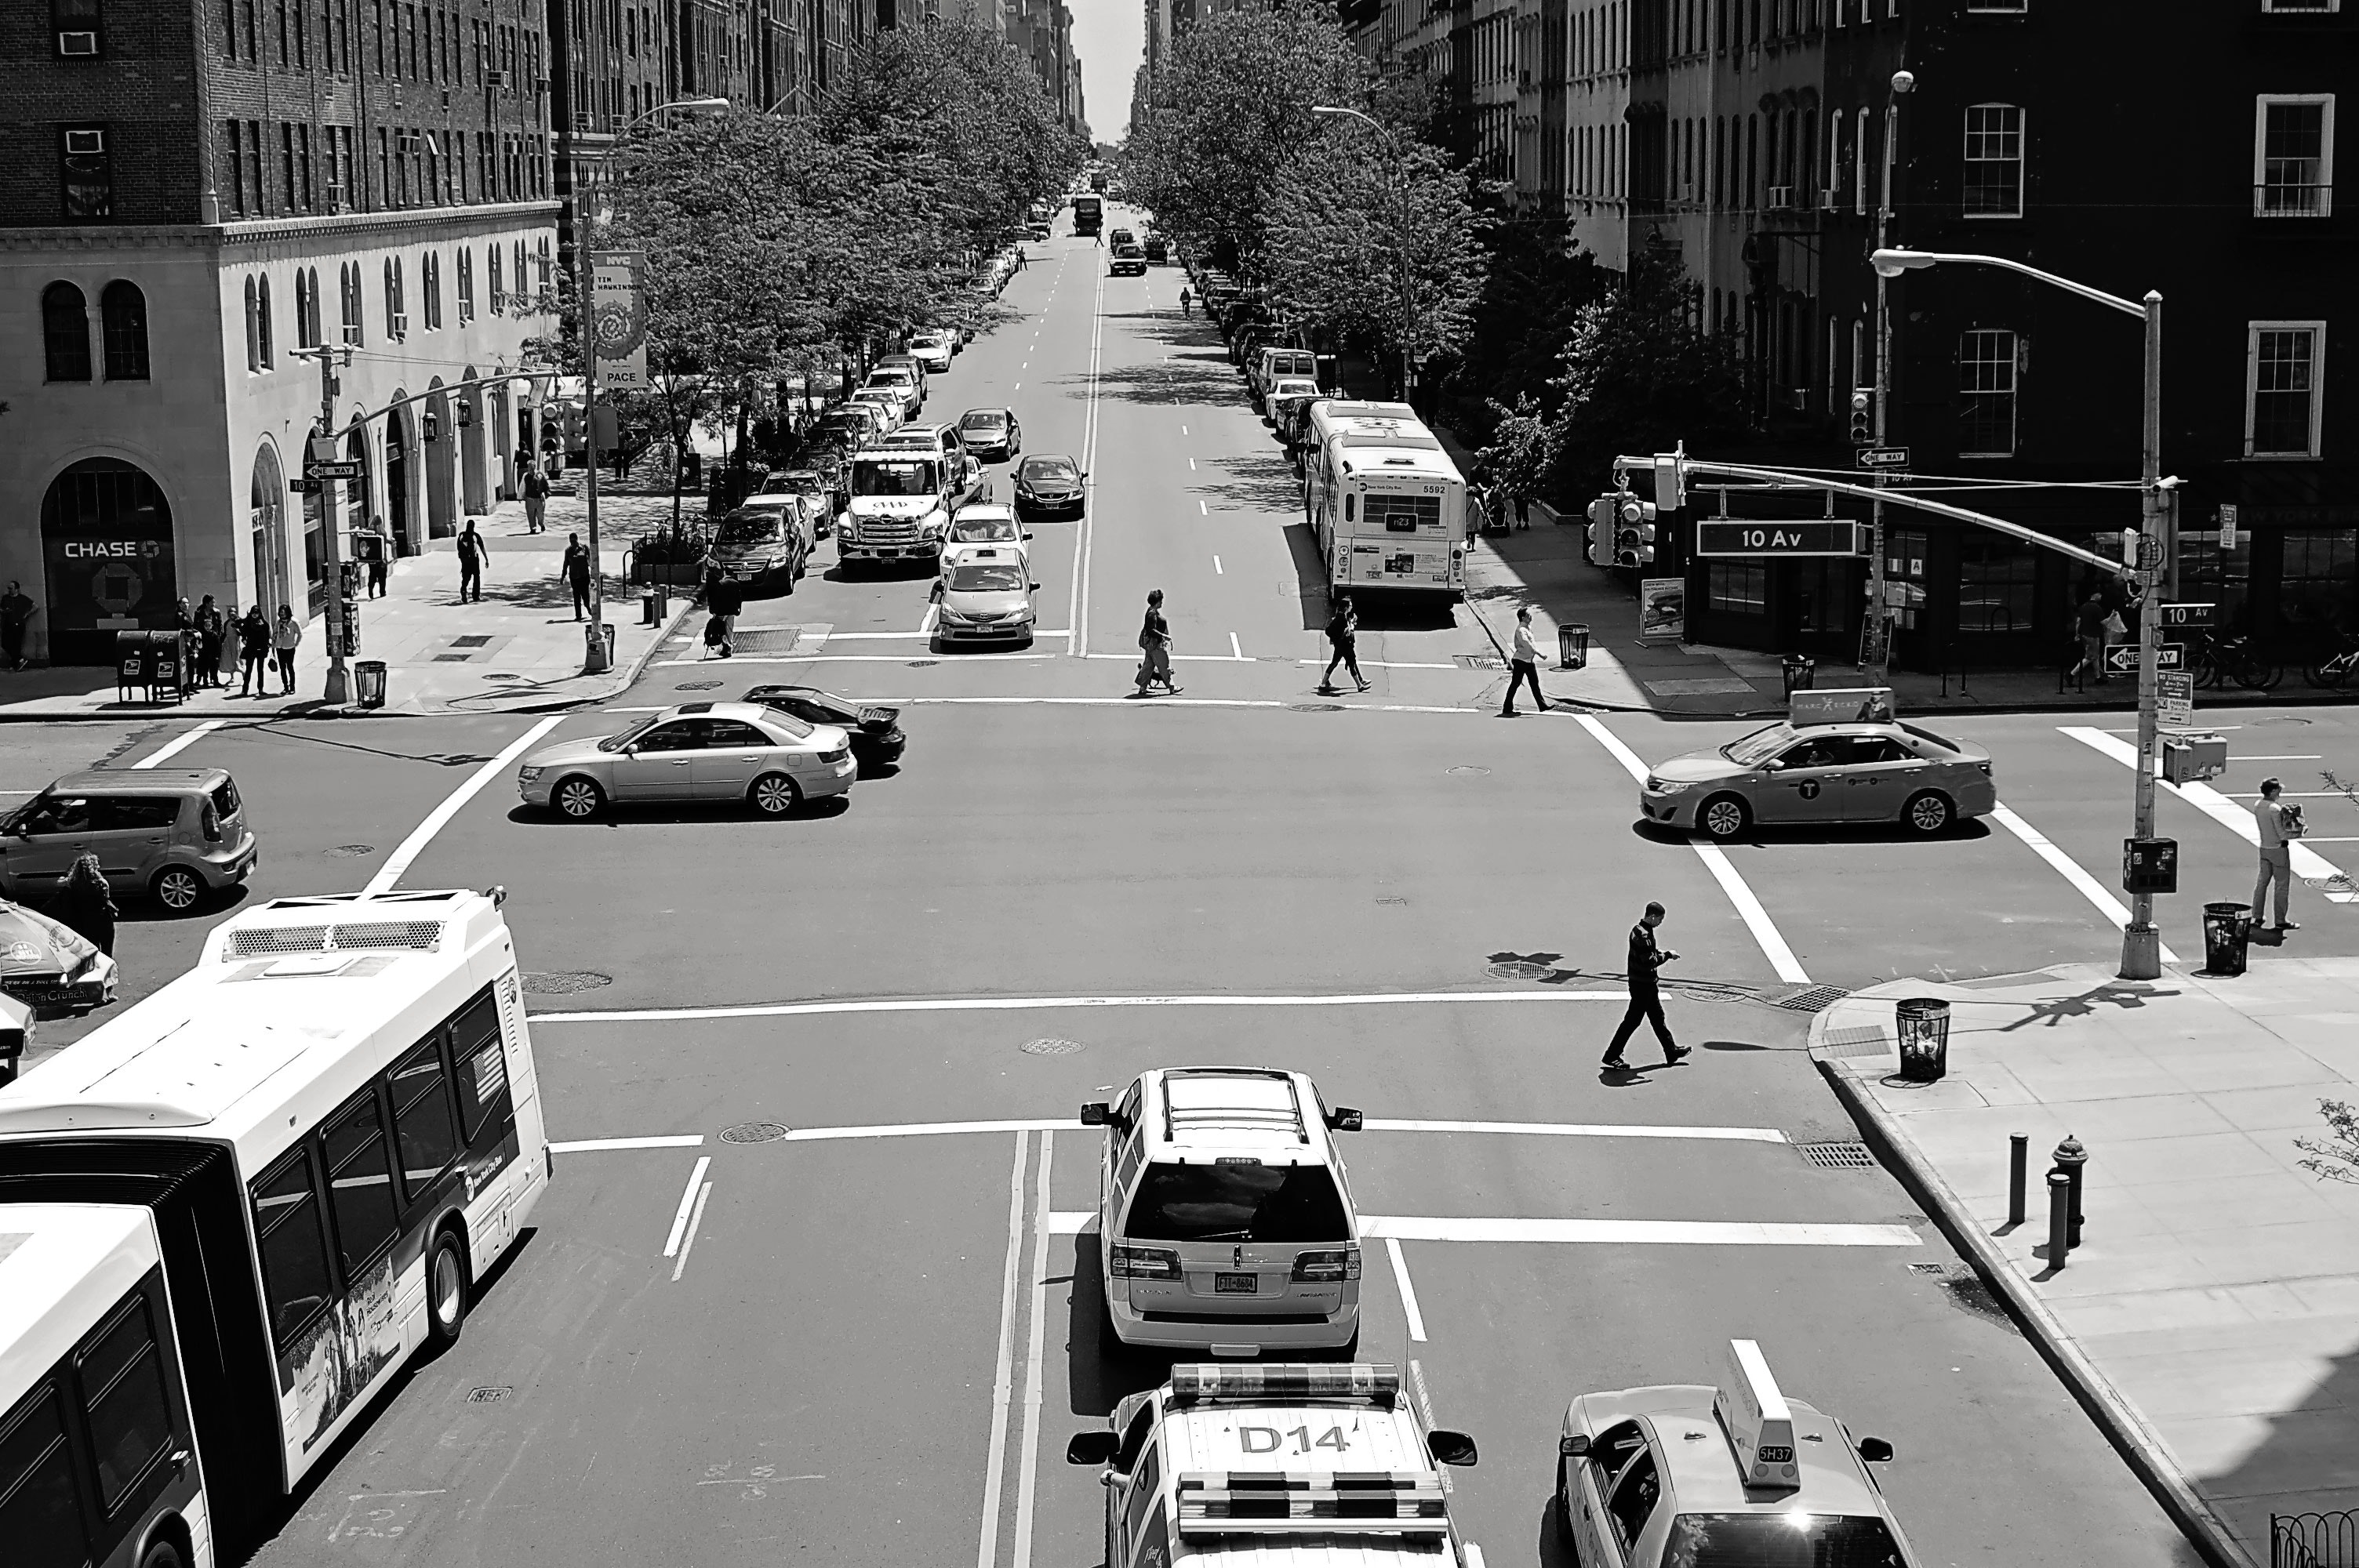 Greyscale Photo of Car and People on Streets, People, Vehicles, Urban, Trees, HQ Photo